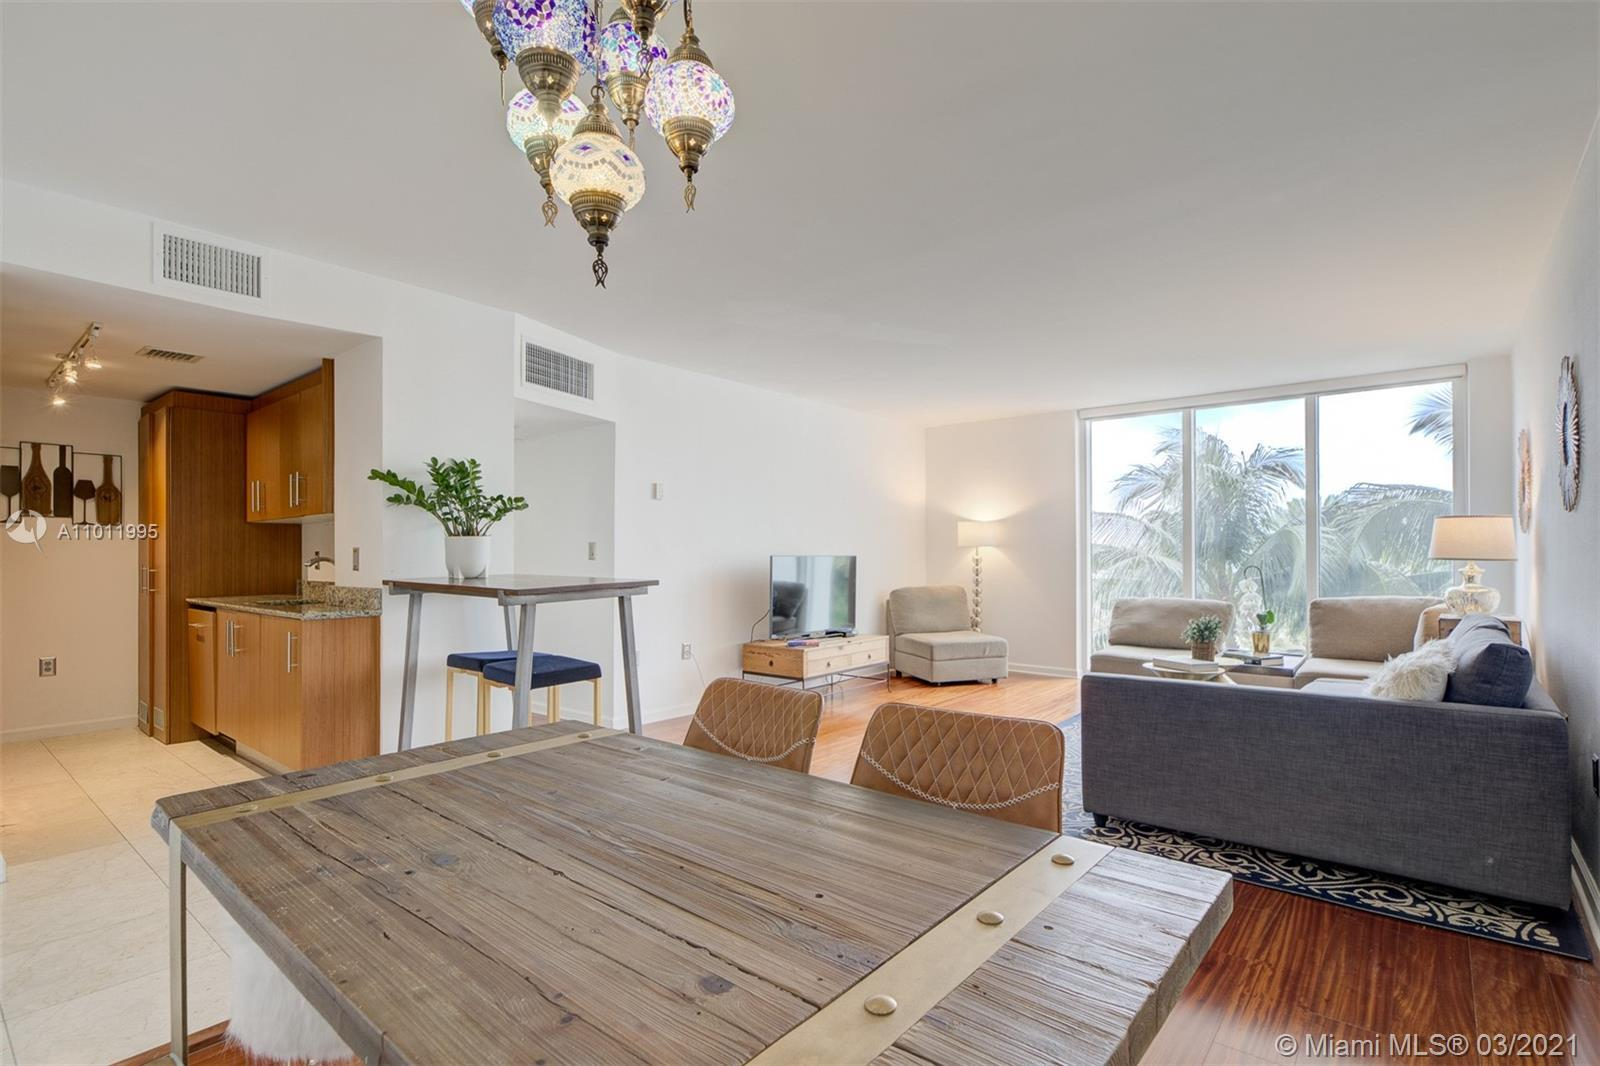 Best priced 2bd 2bath with many upgrades. Beautiful wood floors throughout with marble floors in kit